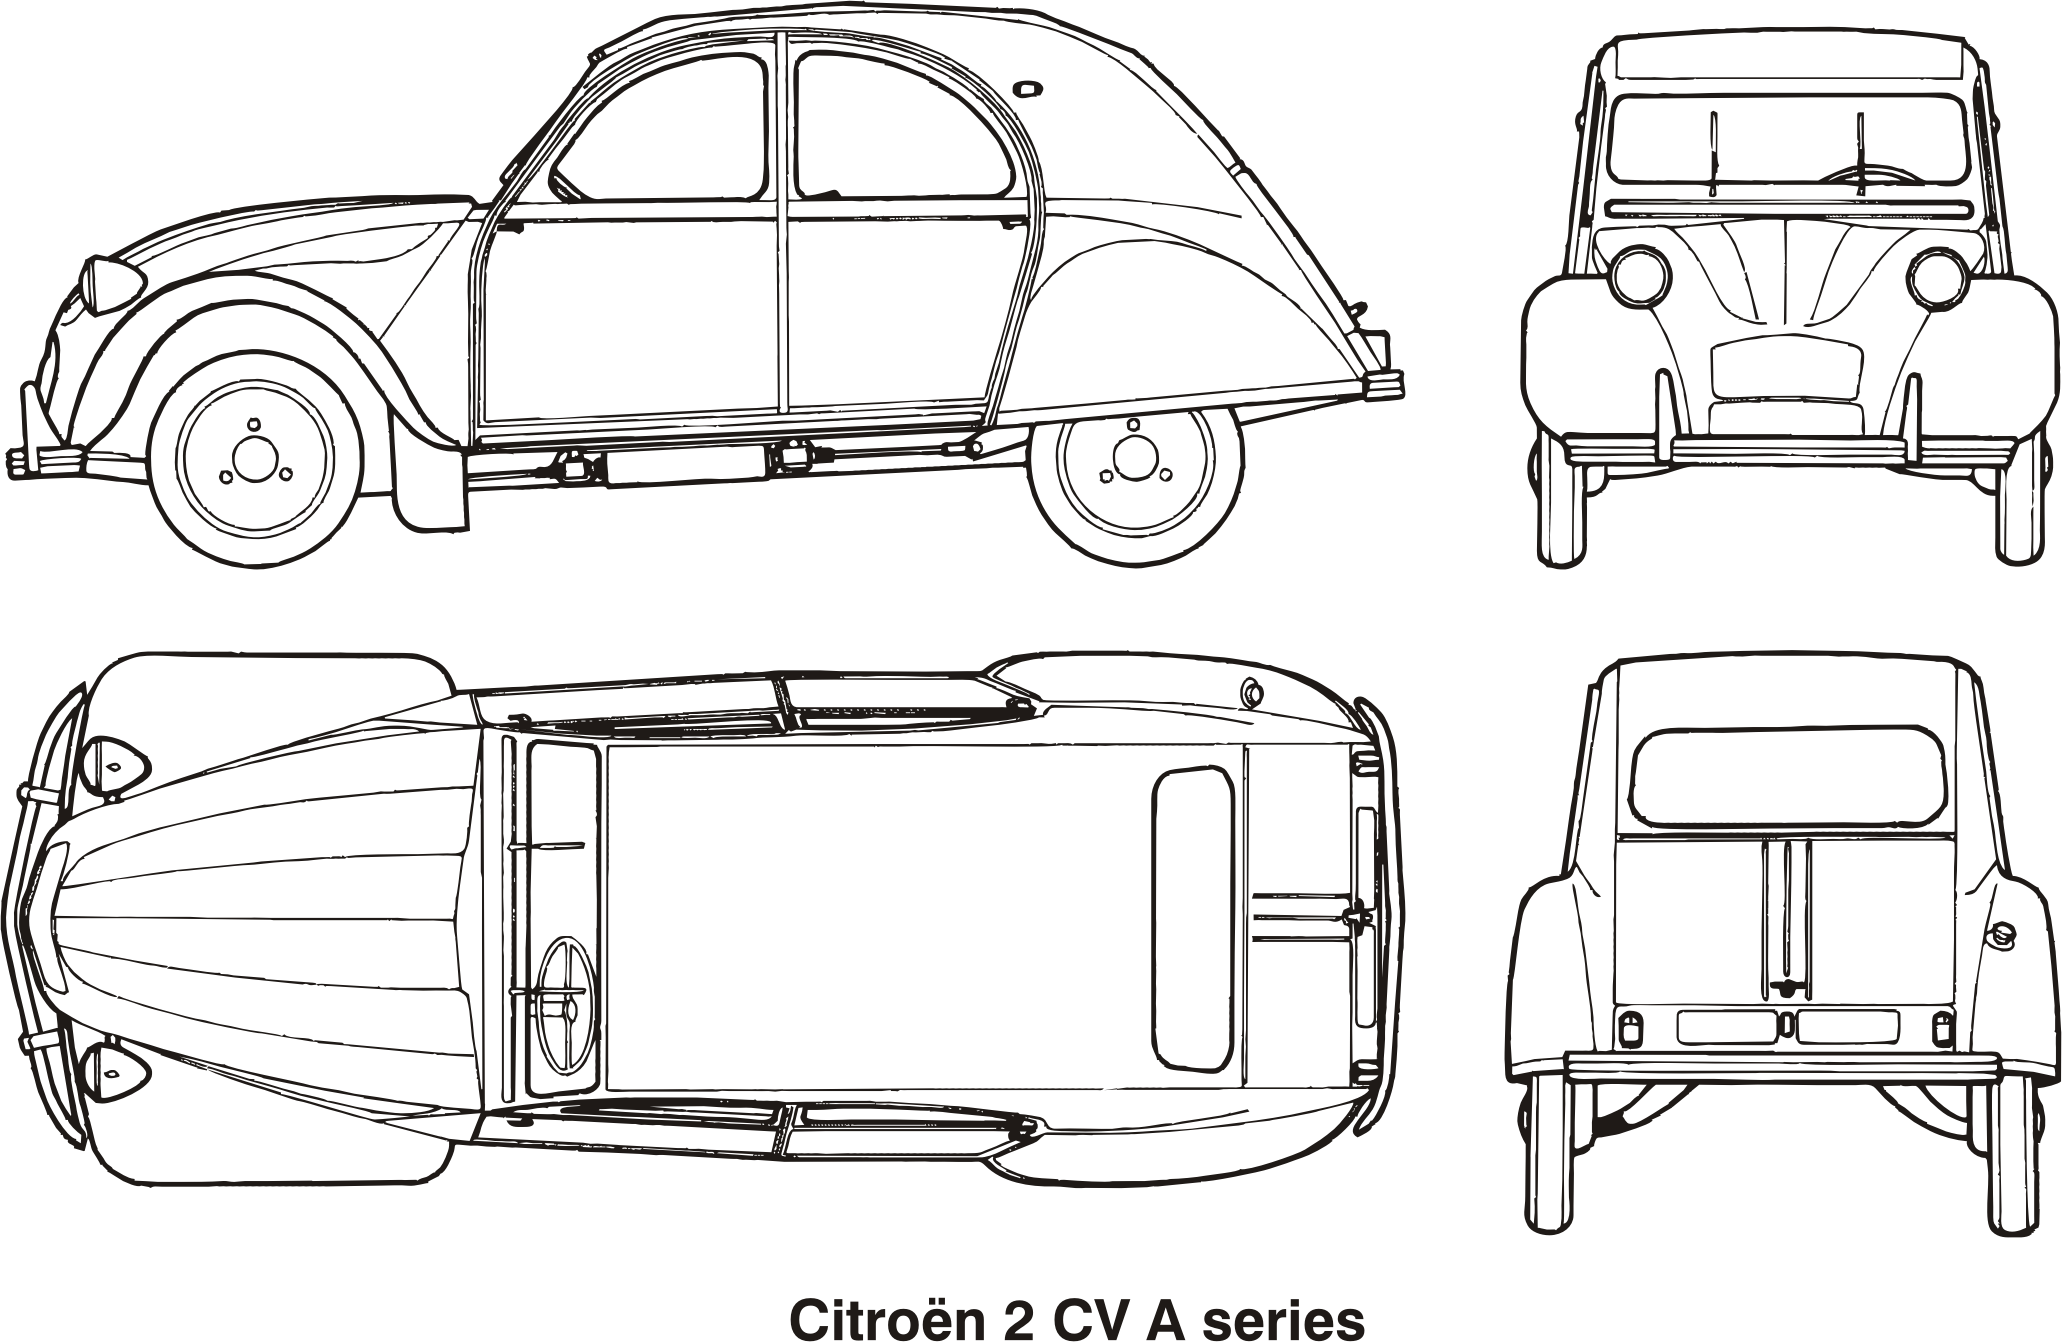 Citroen 2CV A series, year 1960 by Vanja